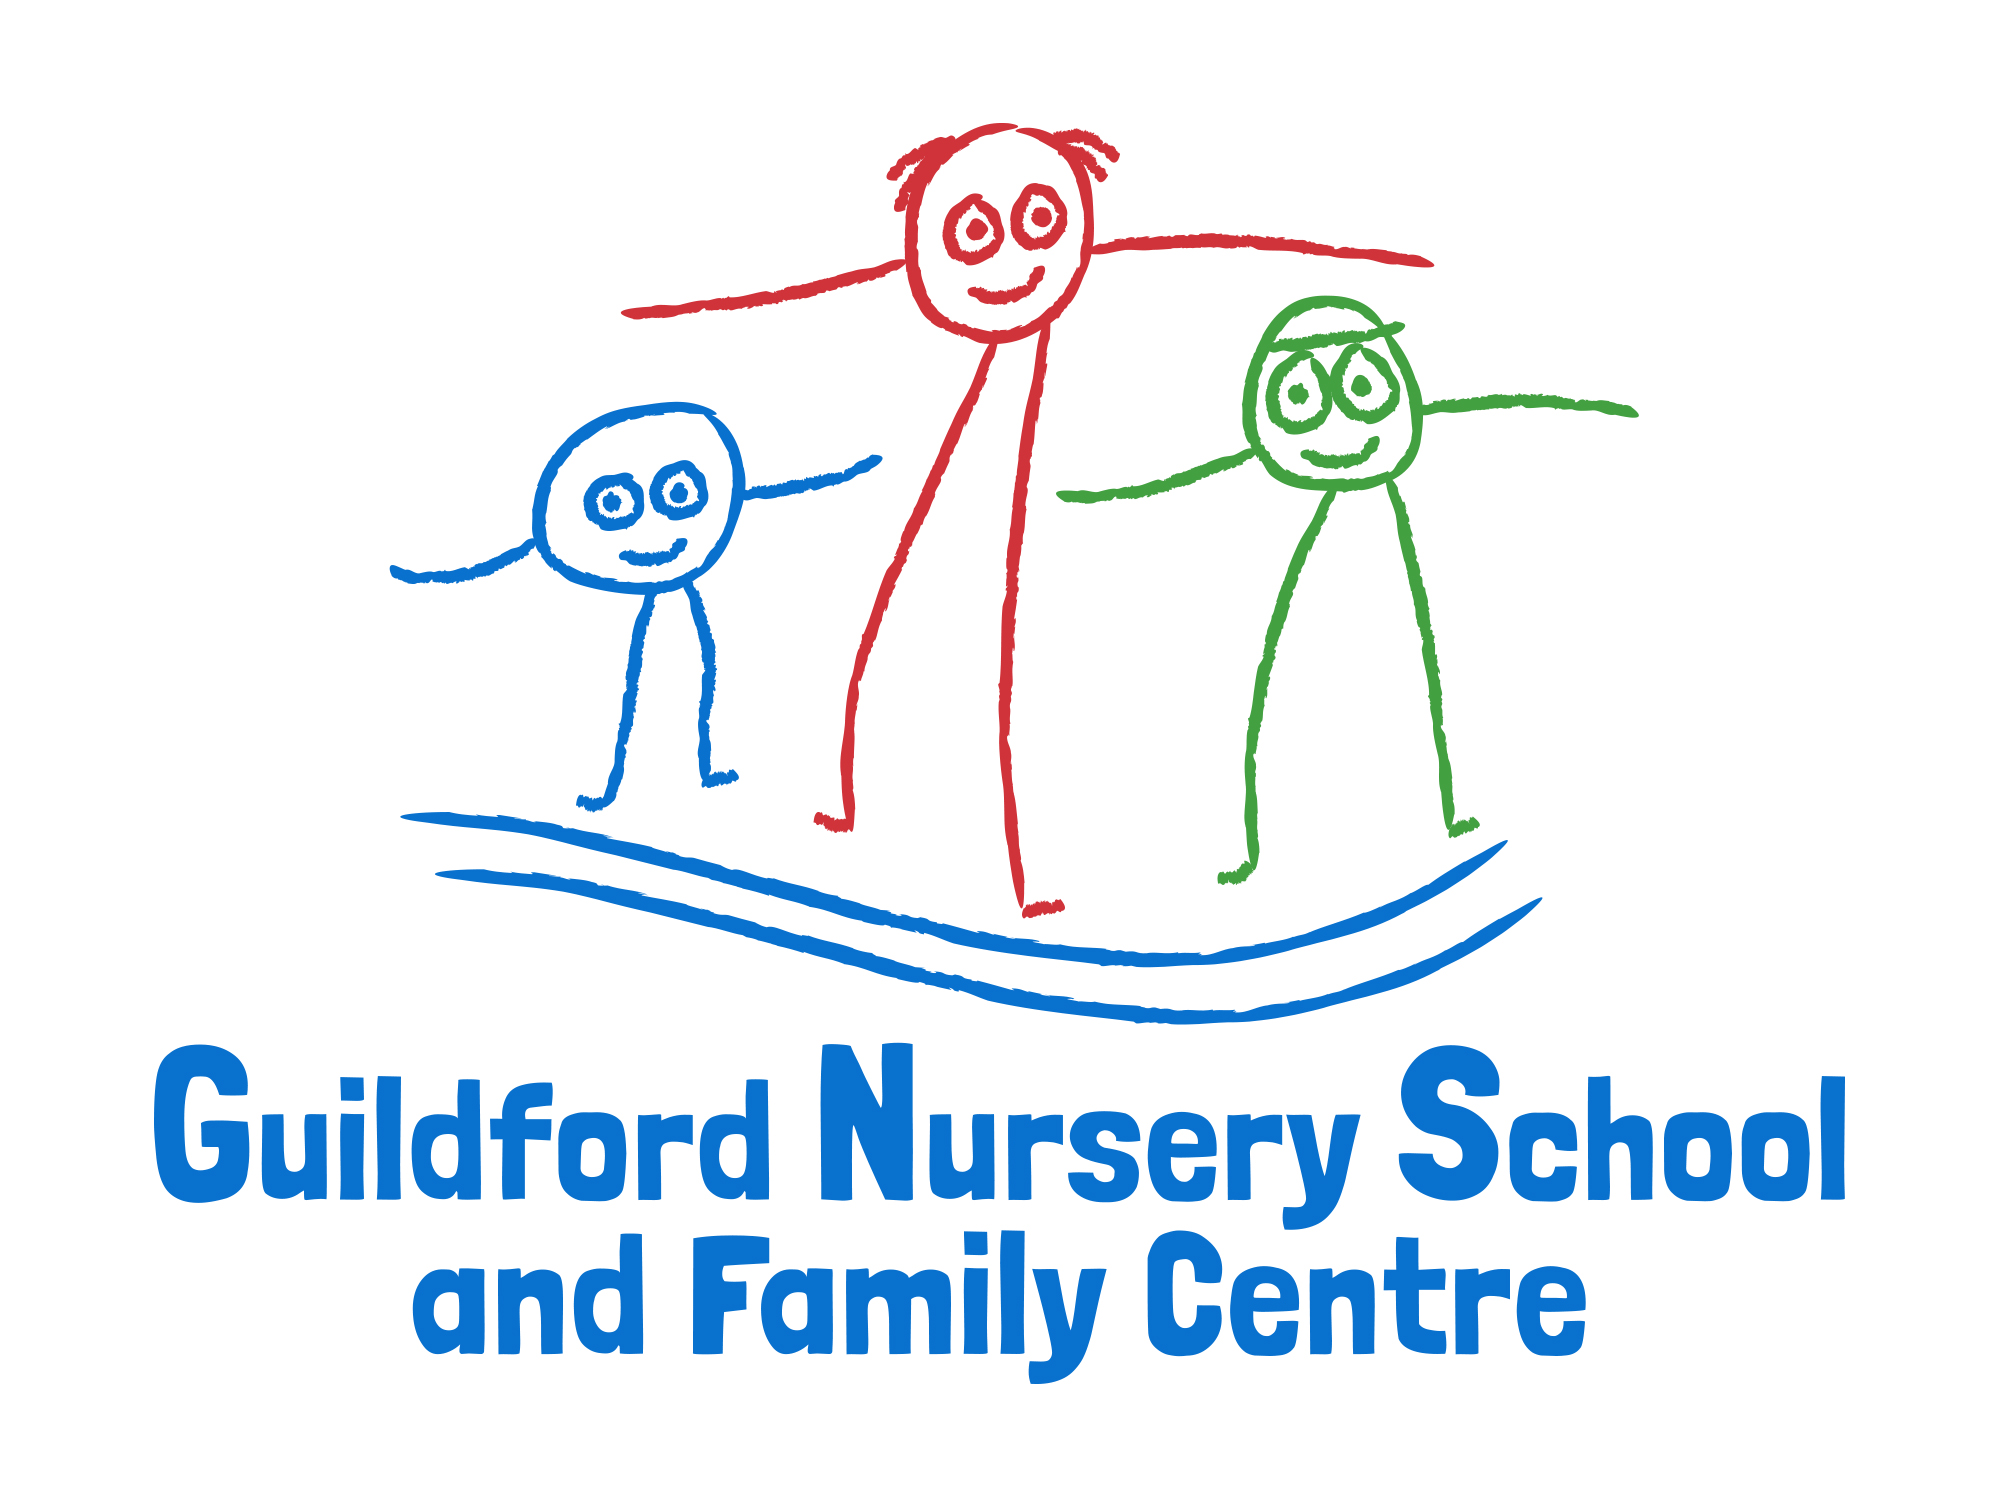 Guildford Nursery School and Children's Centre